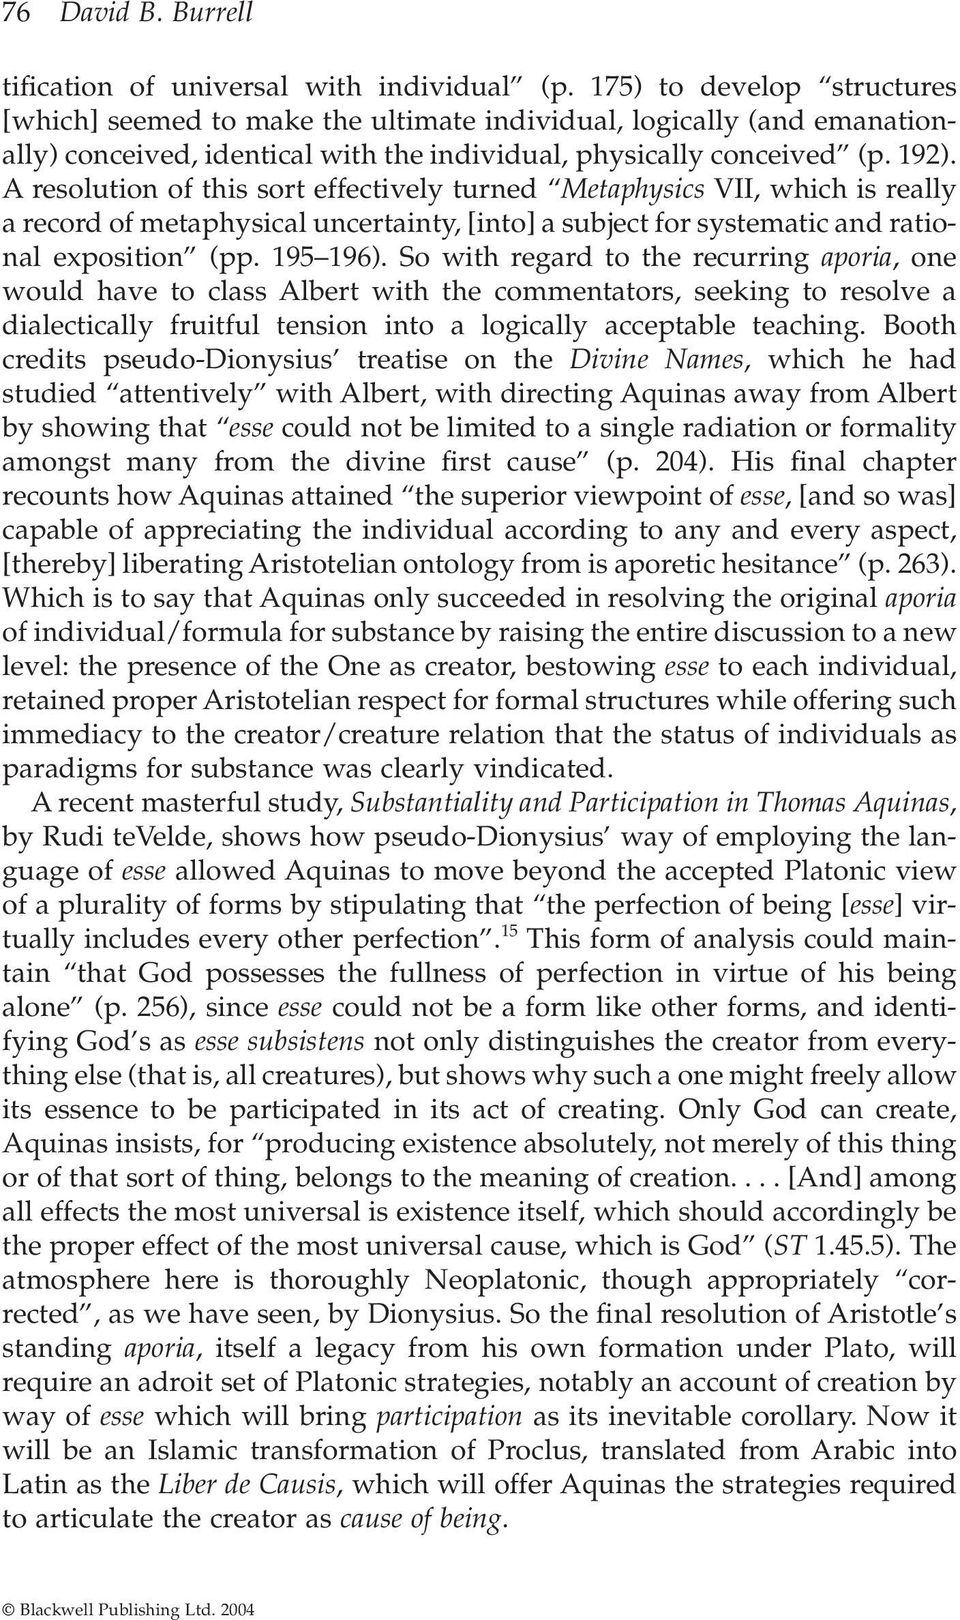 a critical analysis on the metaphysics of st thomas aquinas Introduction to the philosophy of st thomas aquinas, volume 4: metaphysics  metaphysics to the critical analysis of  philosophy of st thomas aquinas,.